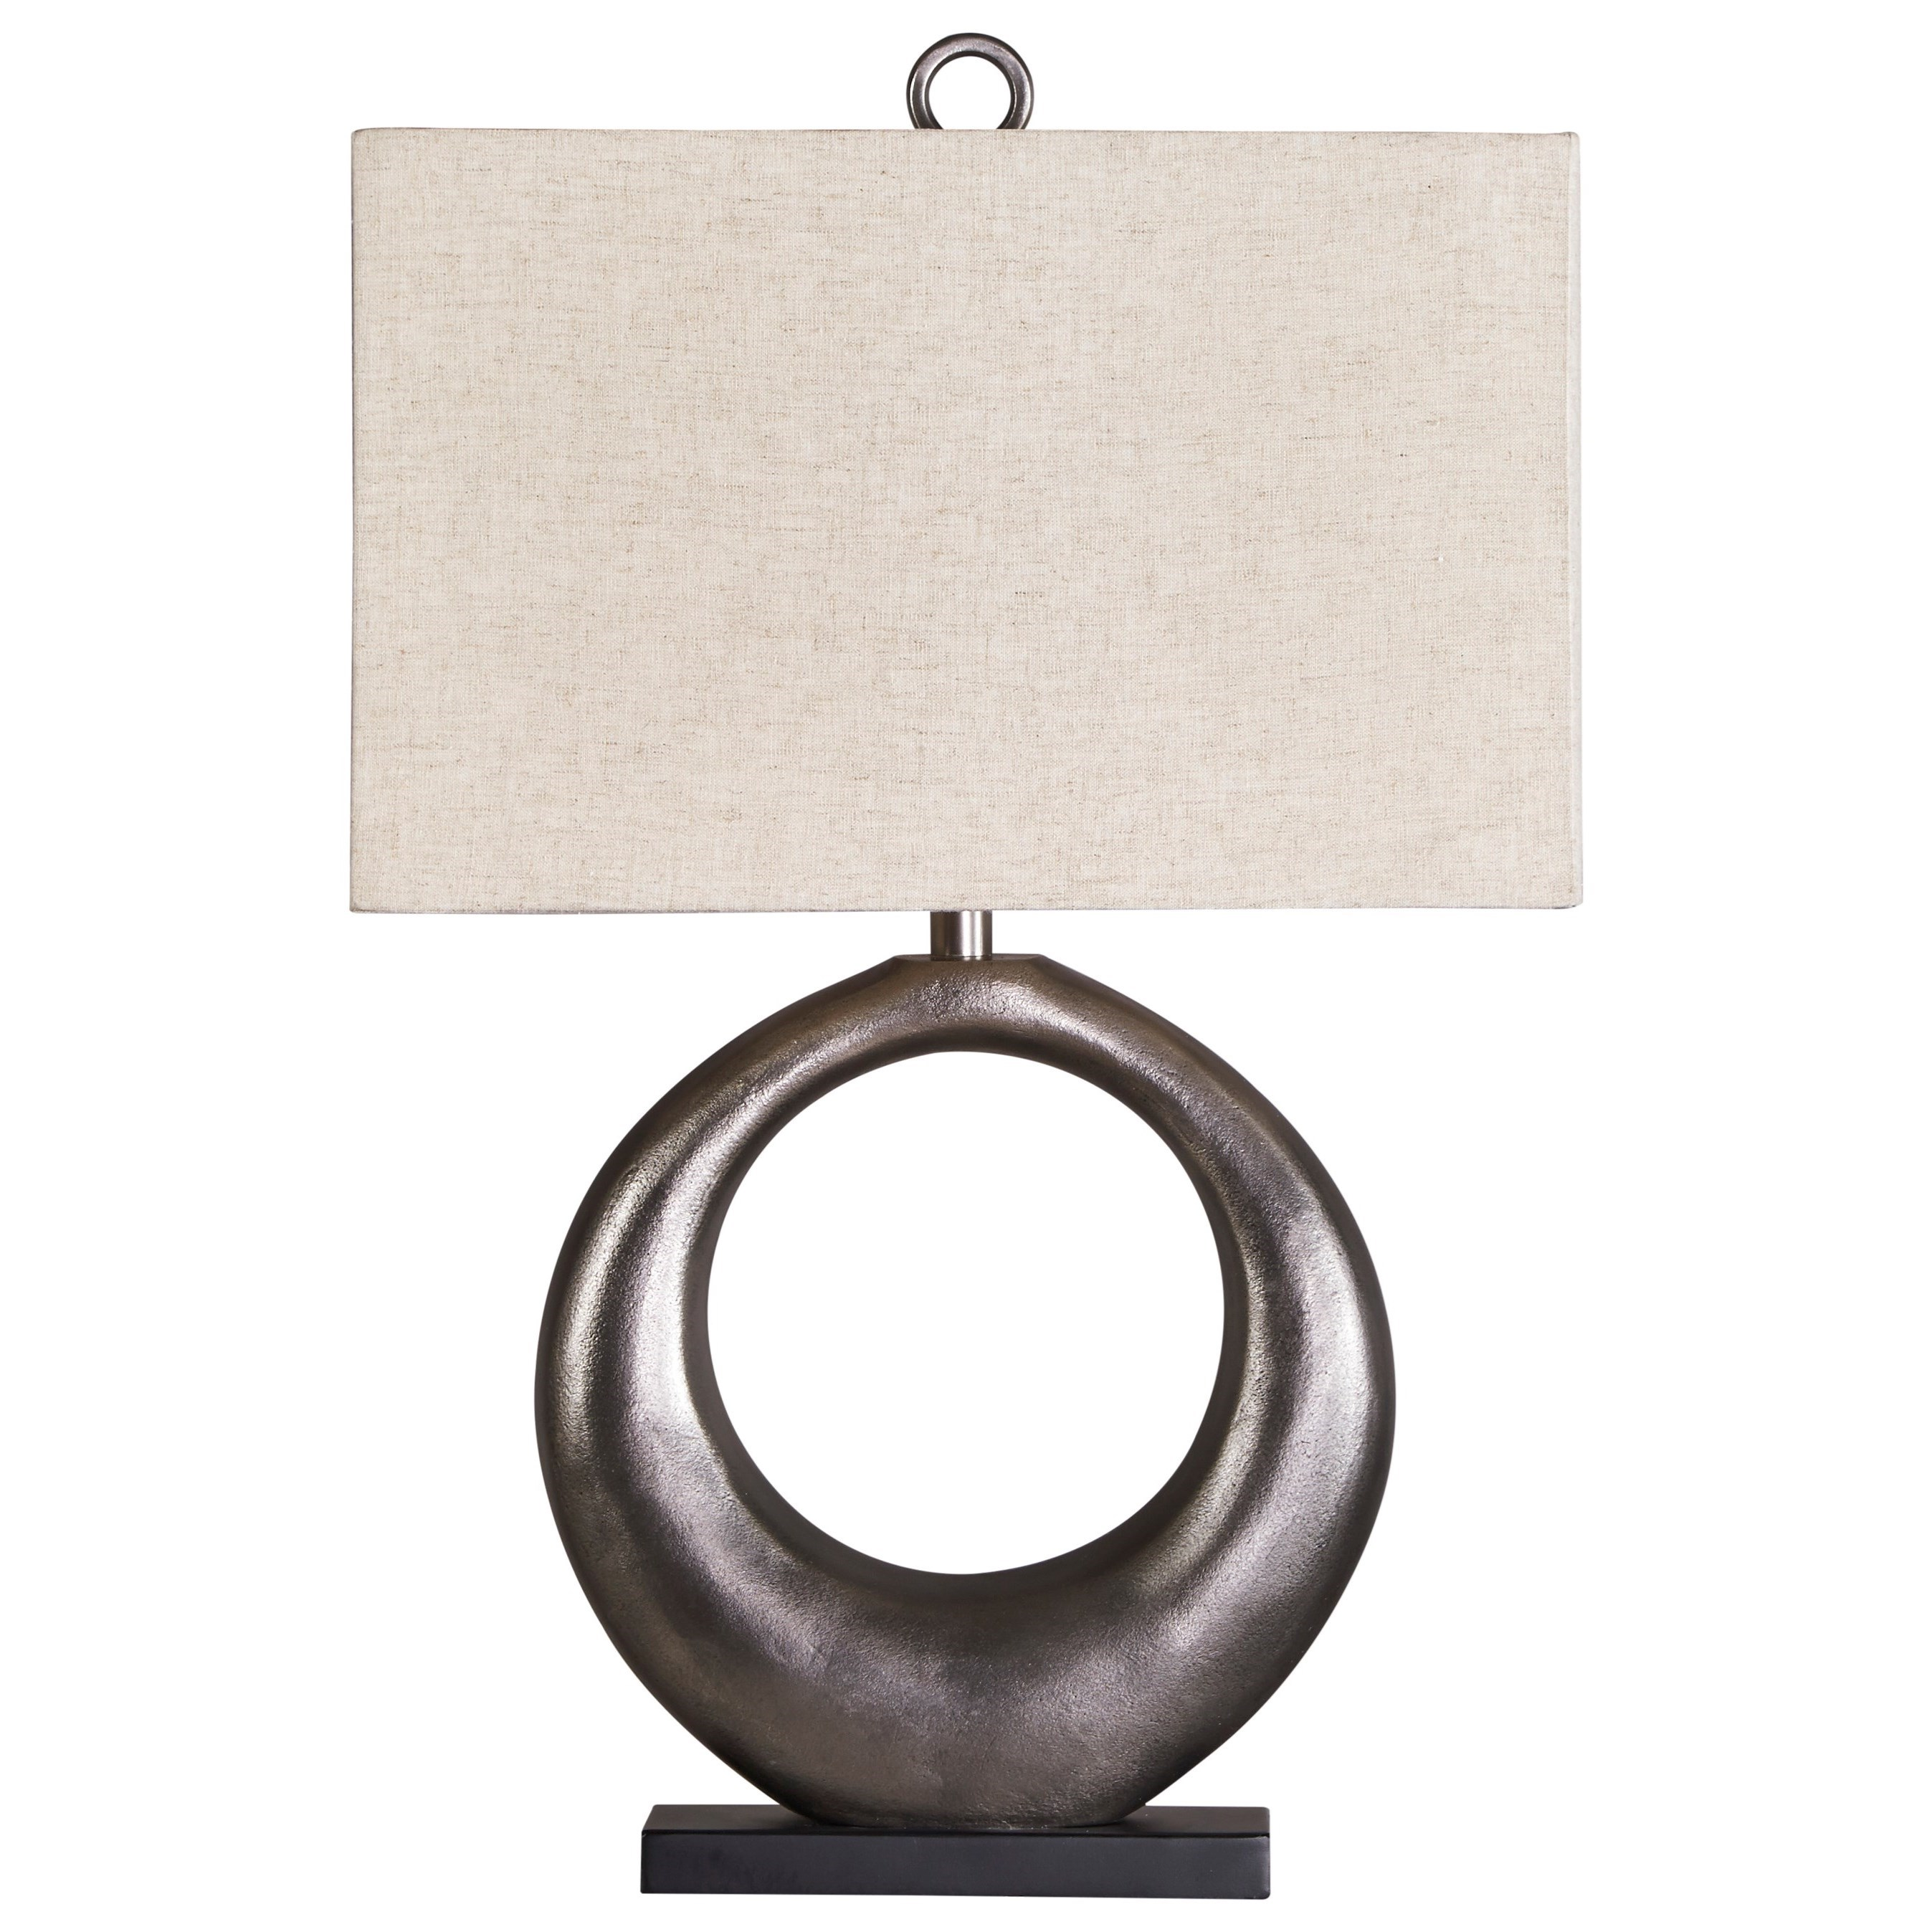 Lamps - Contemporary Saria Antique Silver Finish Metal Table Lamp by Ashley (Signature Design) at Johnny Janosik